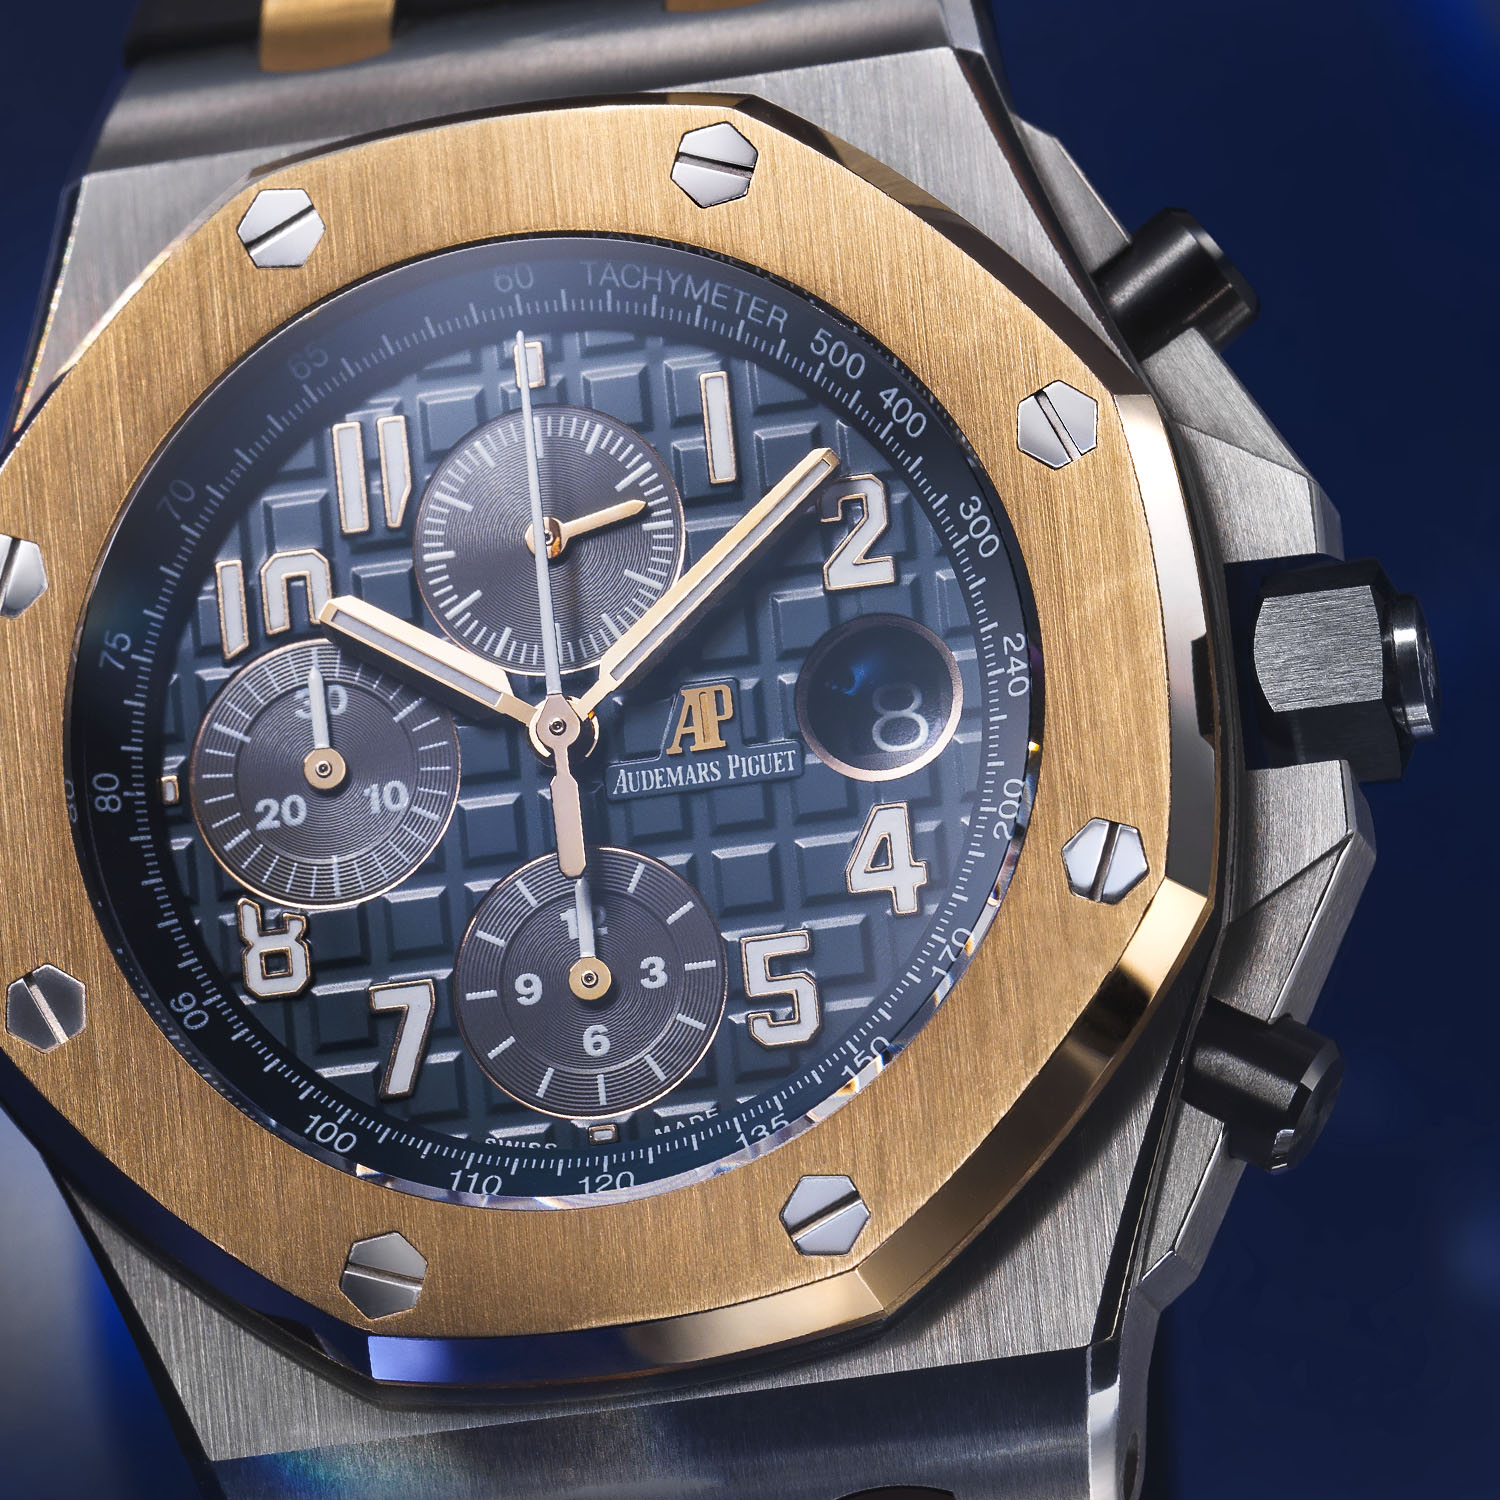 Audemars Piguet Royal Oak Offshore Selfwinding Chronograph Bucherer BLUE 26471SR.OO.D101CR.01.20 - 2